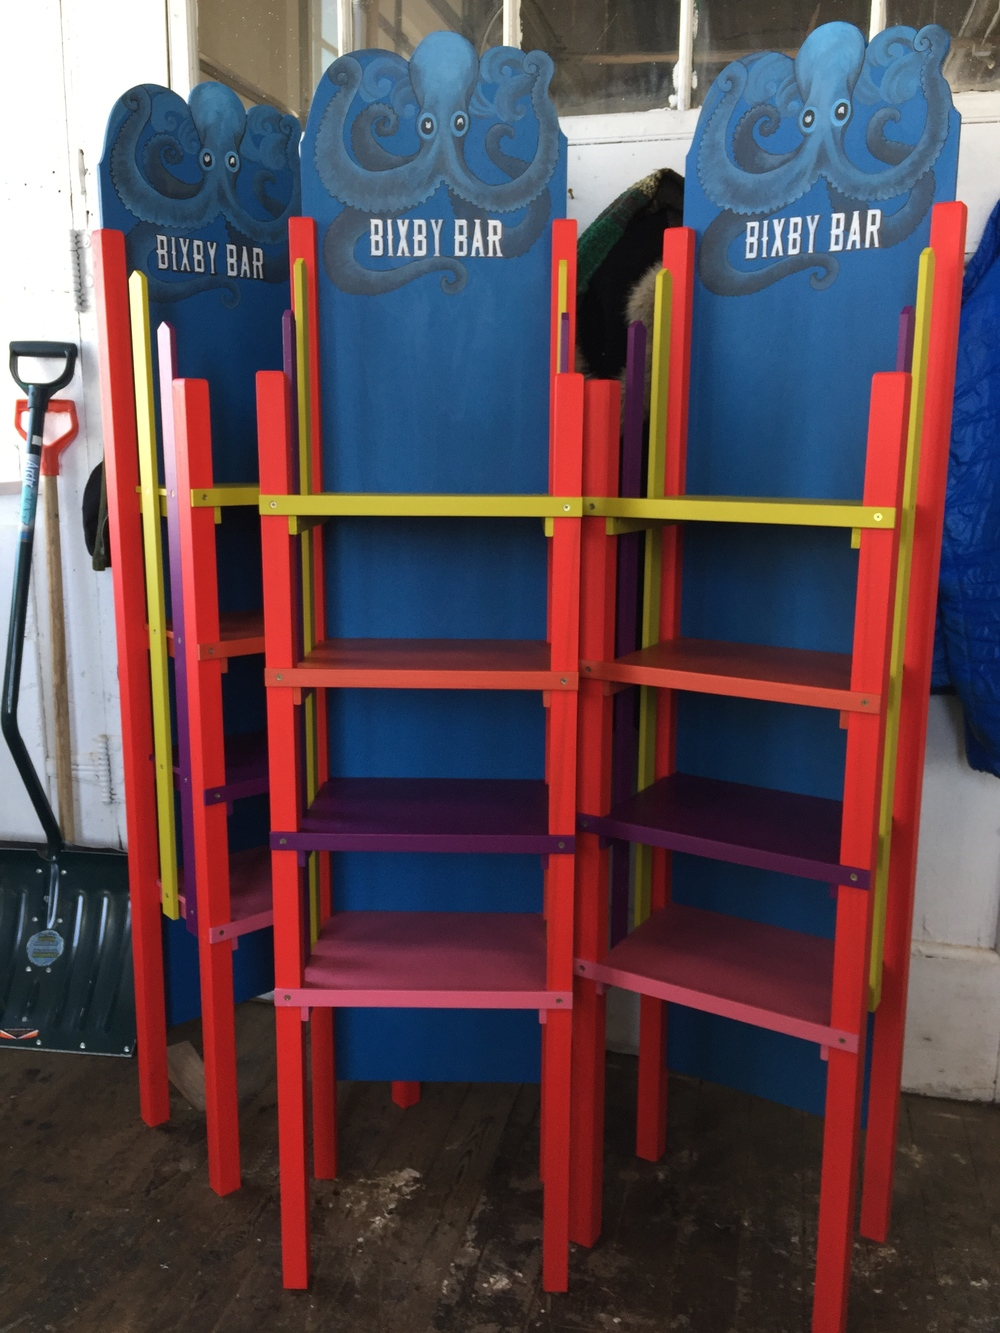 more Bixby Bar display stands